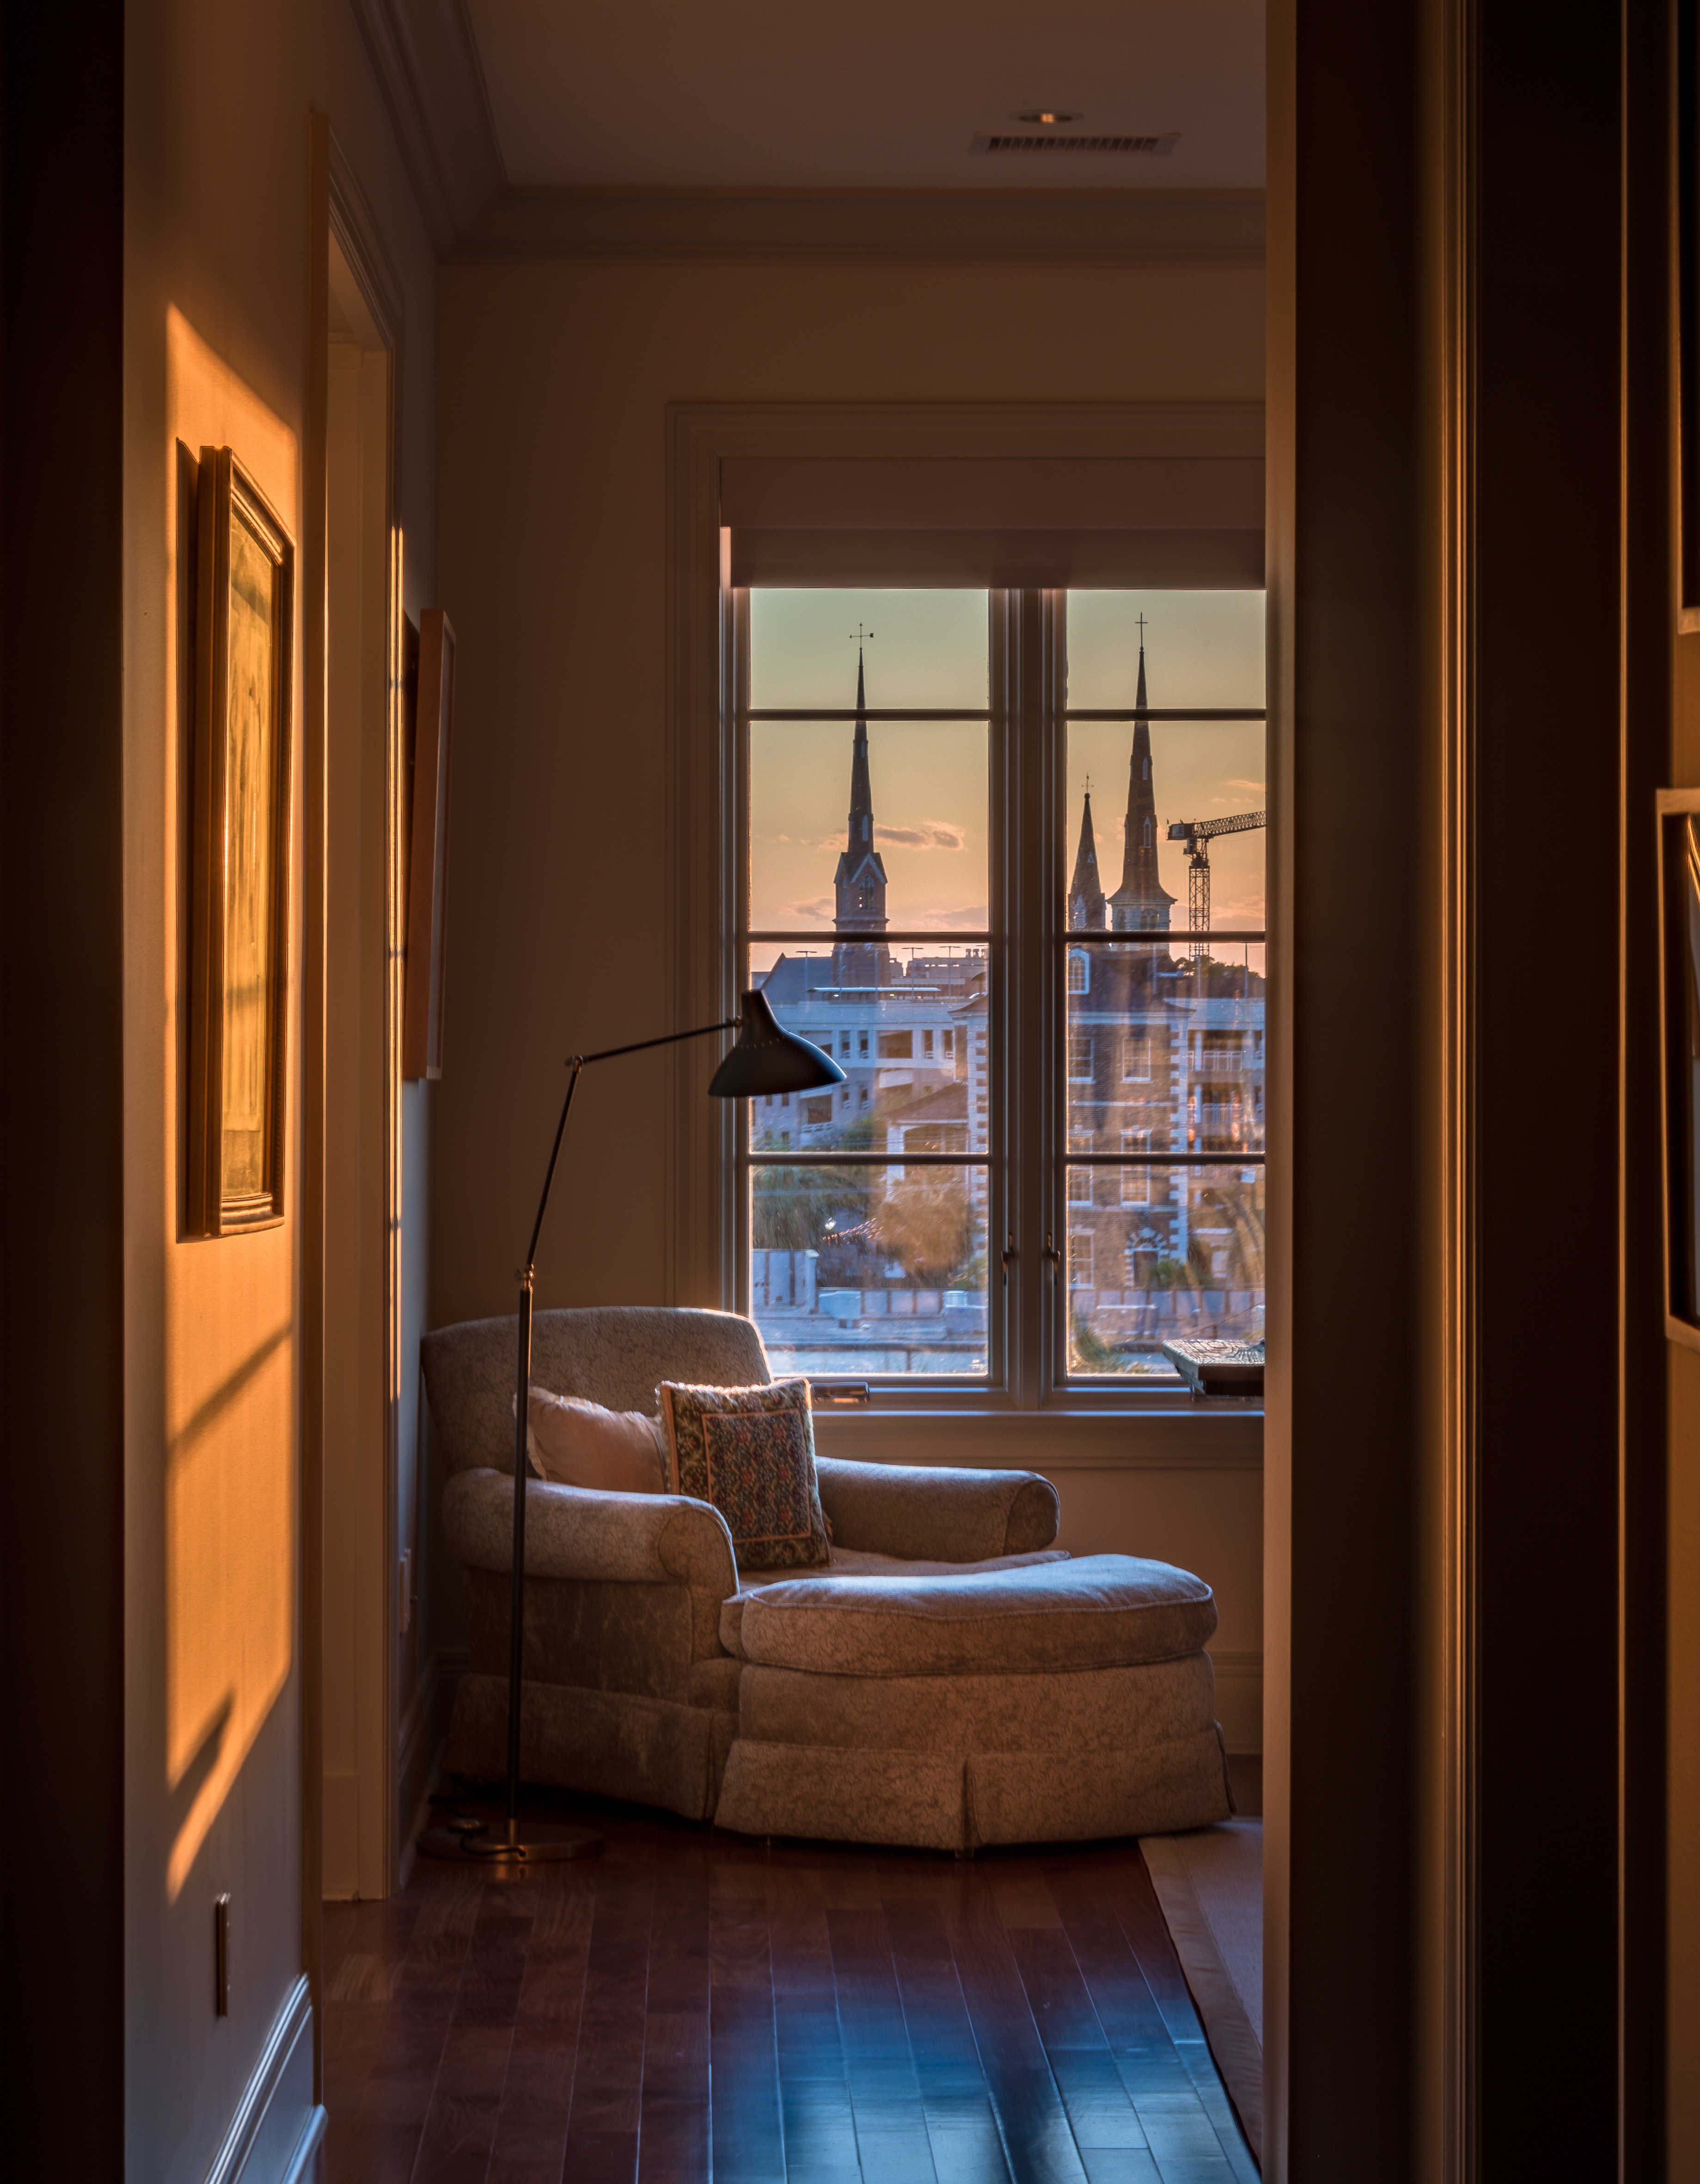 """FINALIST Professional category Holy City by Josh Corrigan; """" A view from the window of a newer Charleston residence showing just how many church spires can be found in one place!"""""""